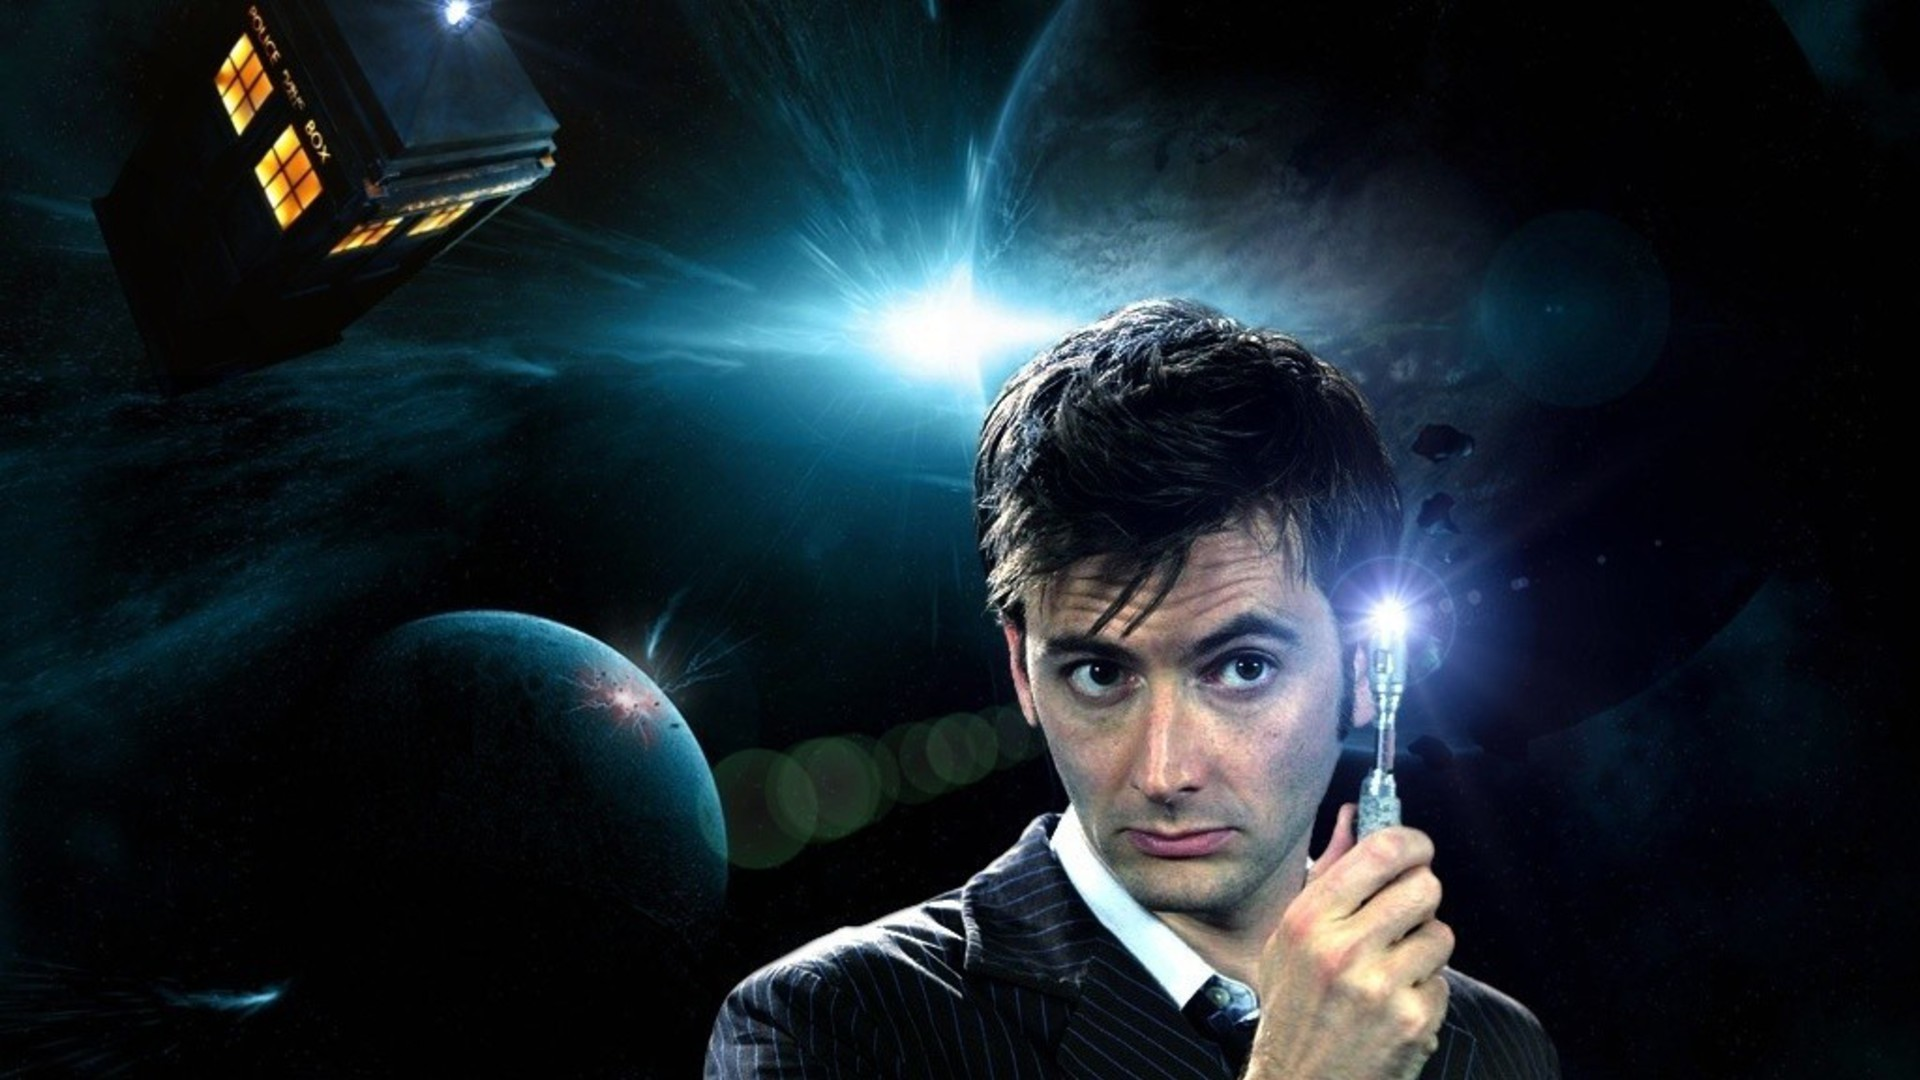 Doctor Who 10th Doctor Wallpaper 67 Pictures